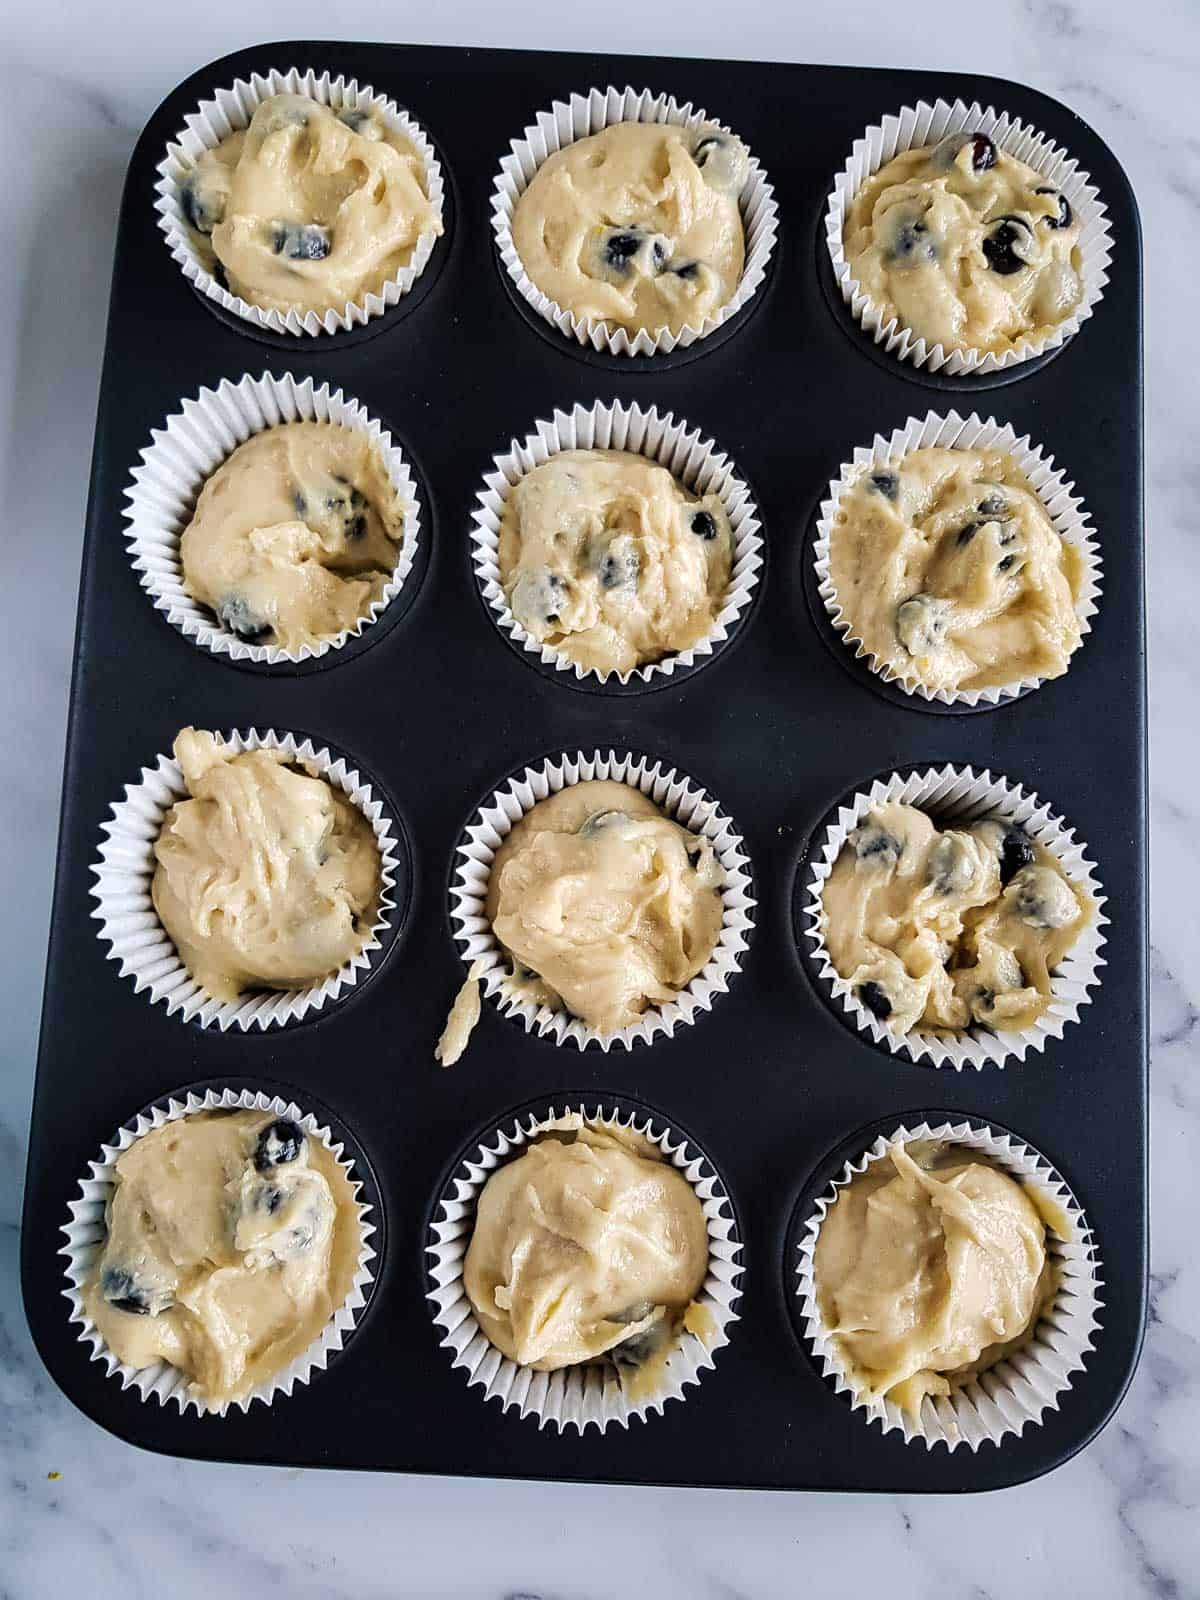 Muffin batter added to lined muffin pan.